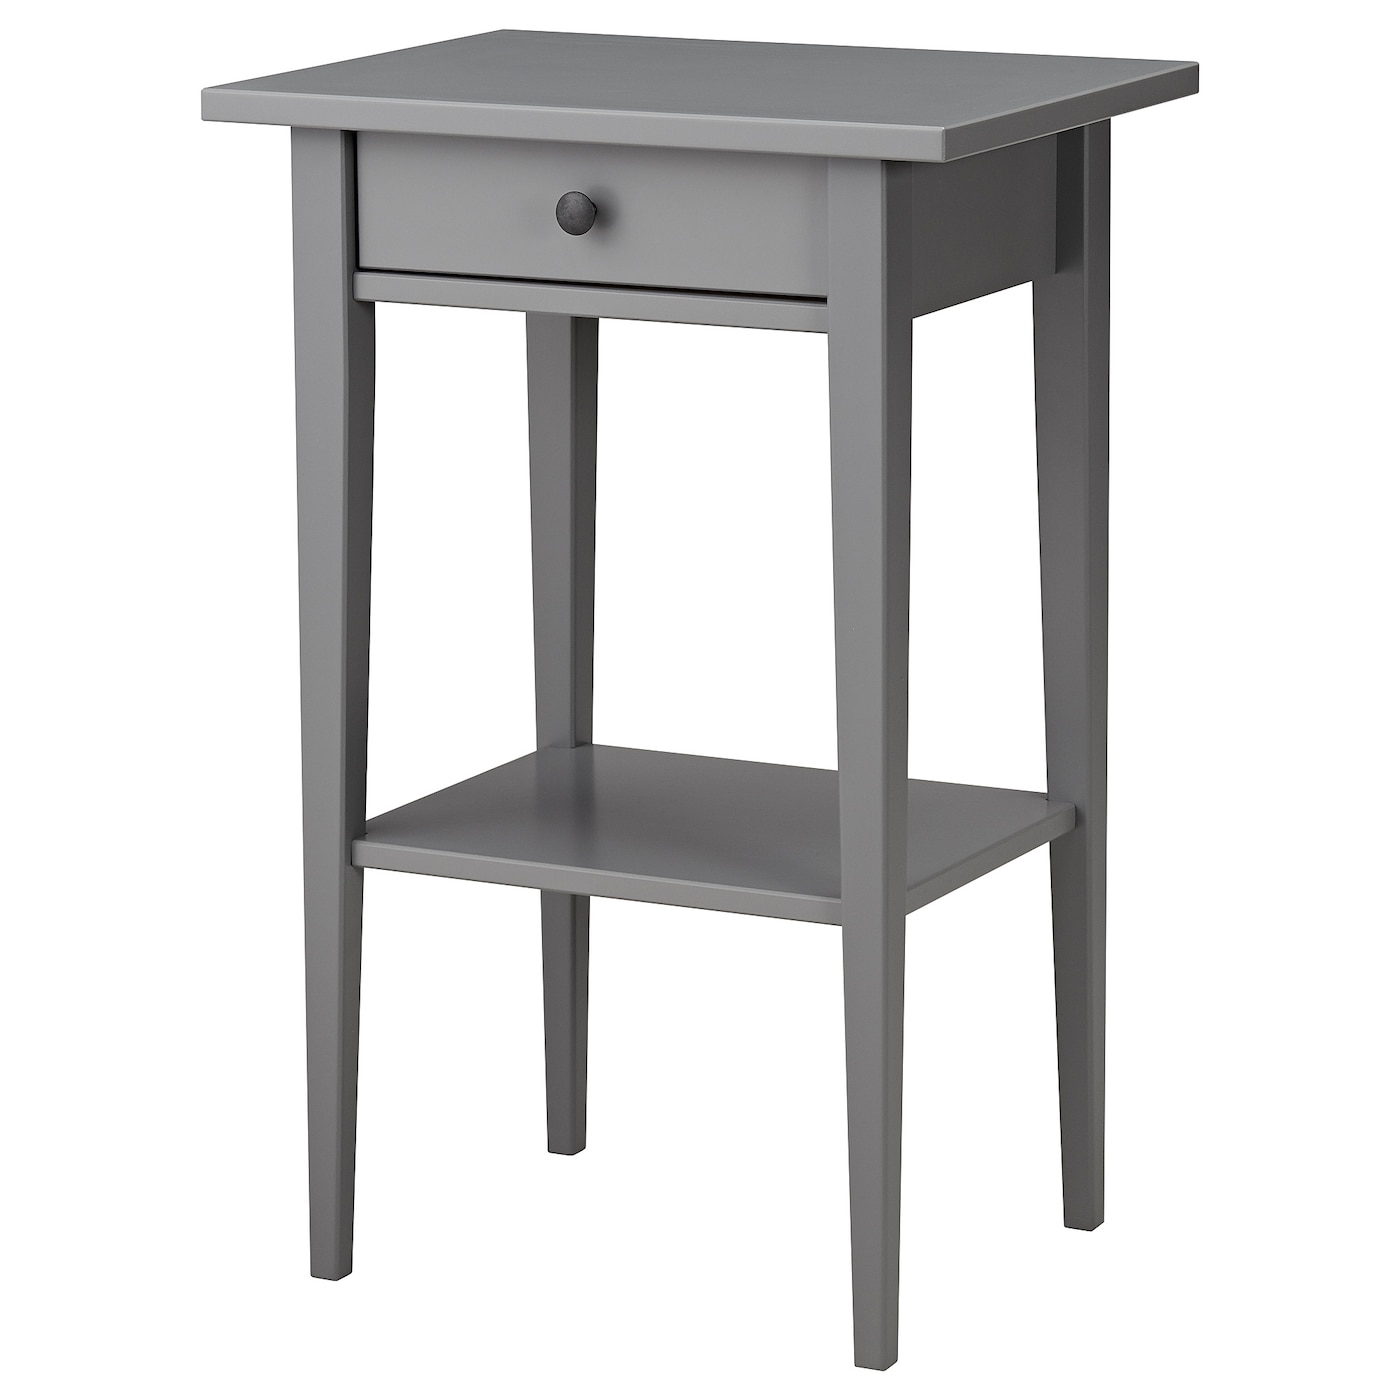 bzscbesm under sometimes is manufacturer the drawer sku following listed vasby also table numbers bedside